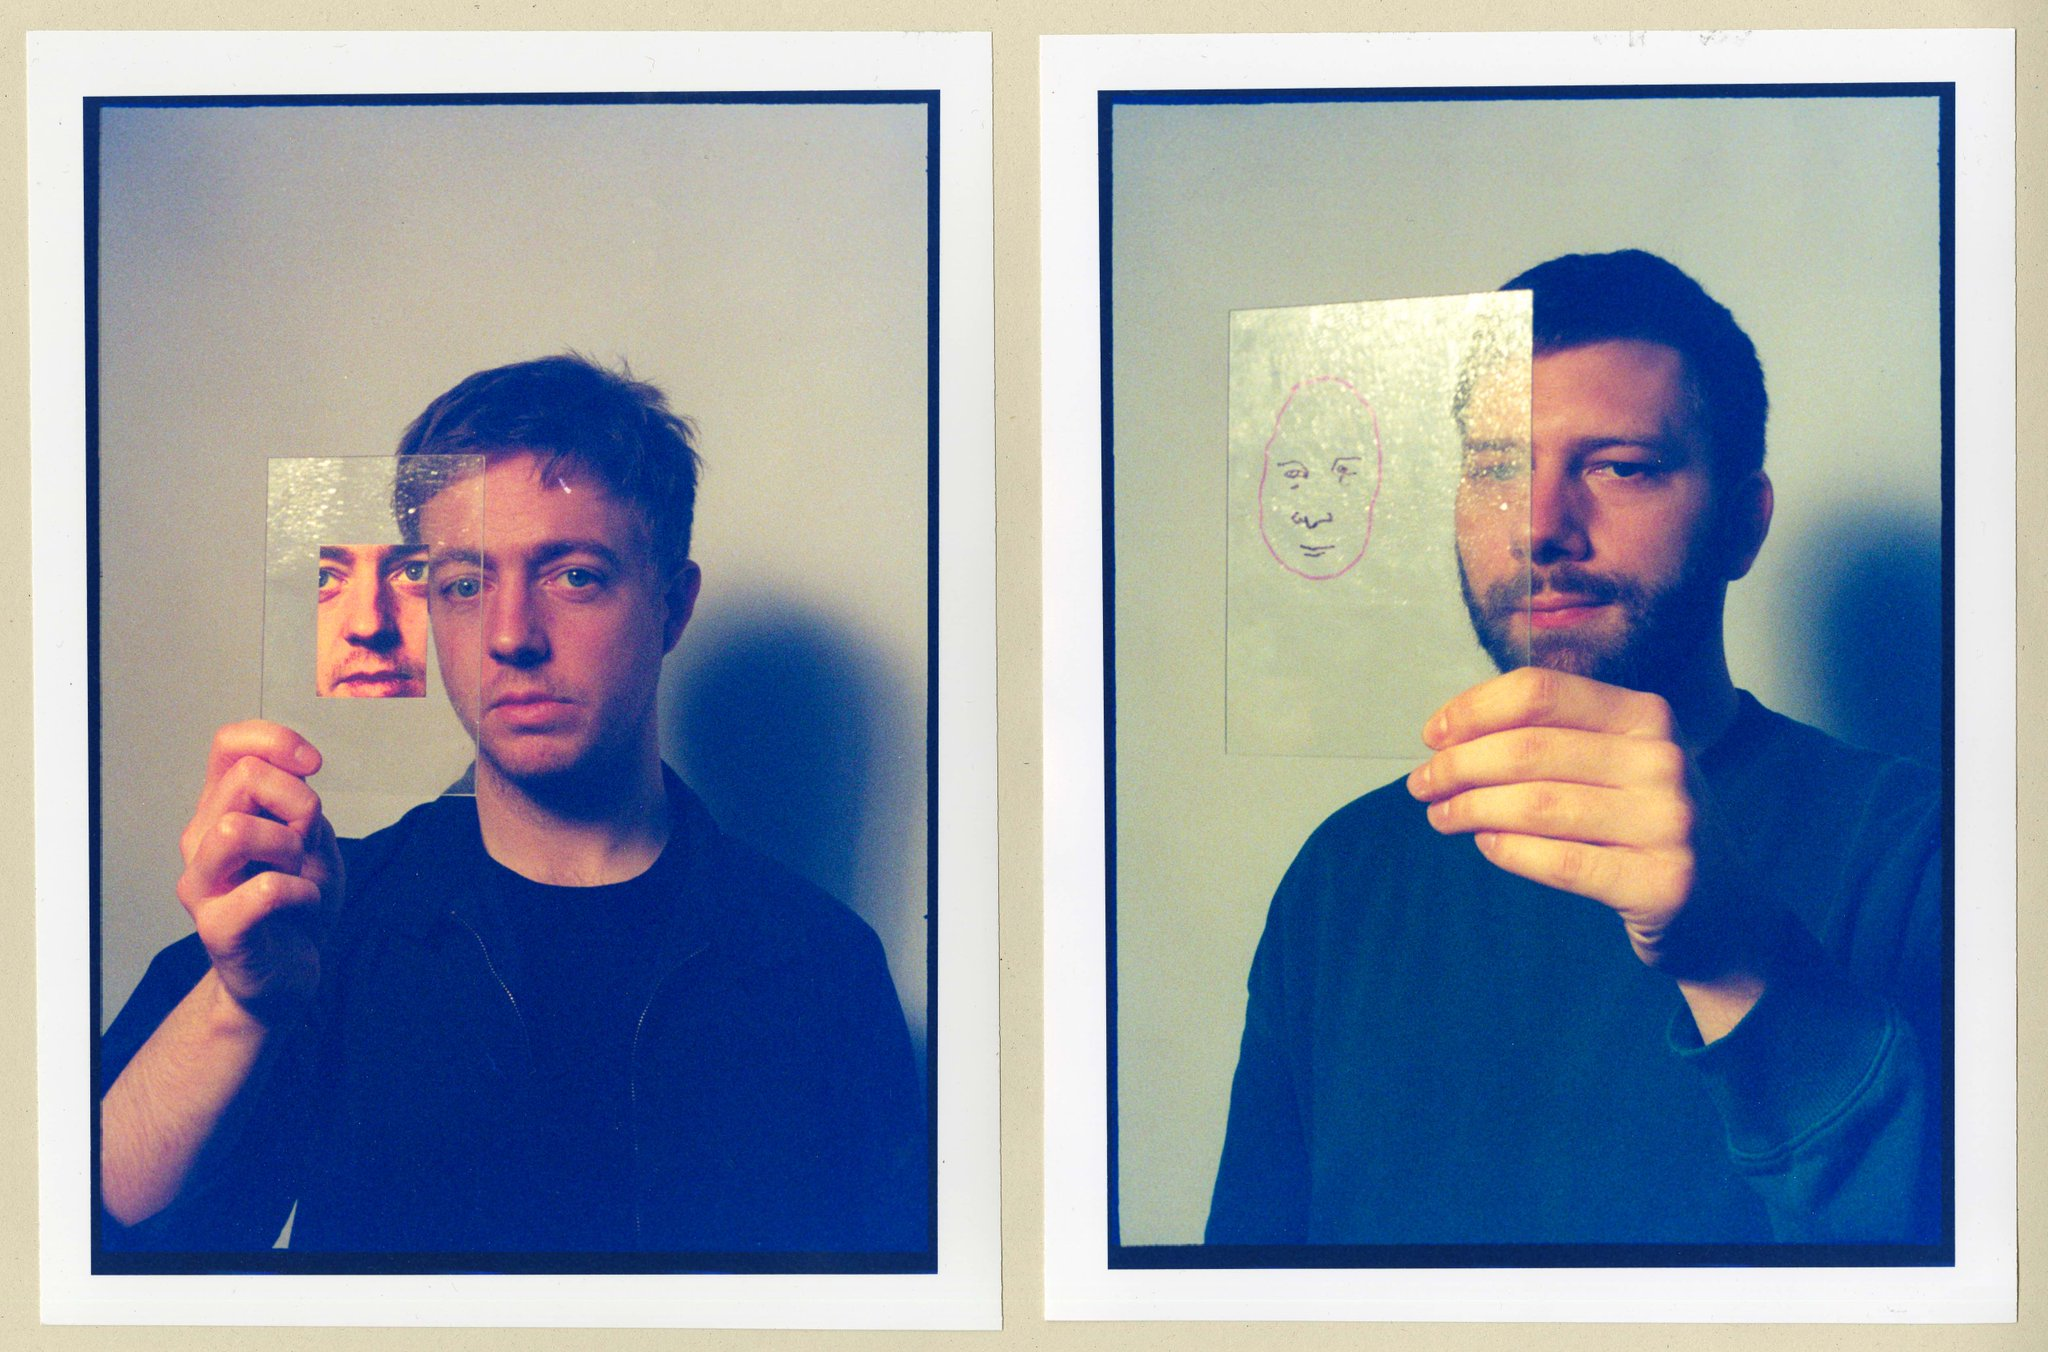 .@mountkimbie detail their new music, and forthcoming collabs with @jamesblake and @KamasiW. https://t.co/gI1CLmwxBF https://t.co/FHHpP4QaW3